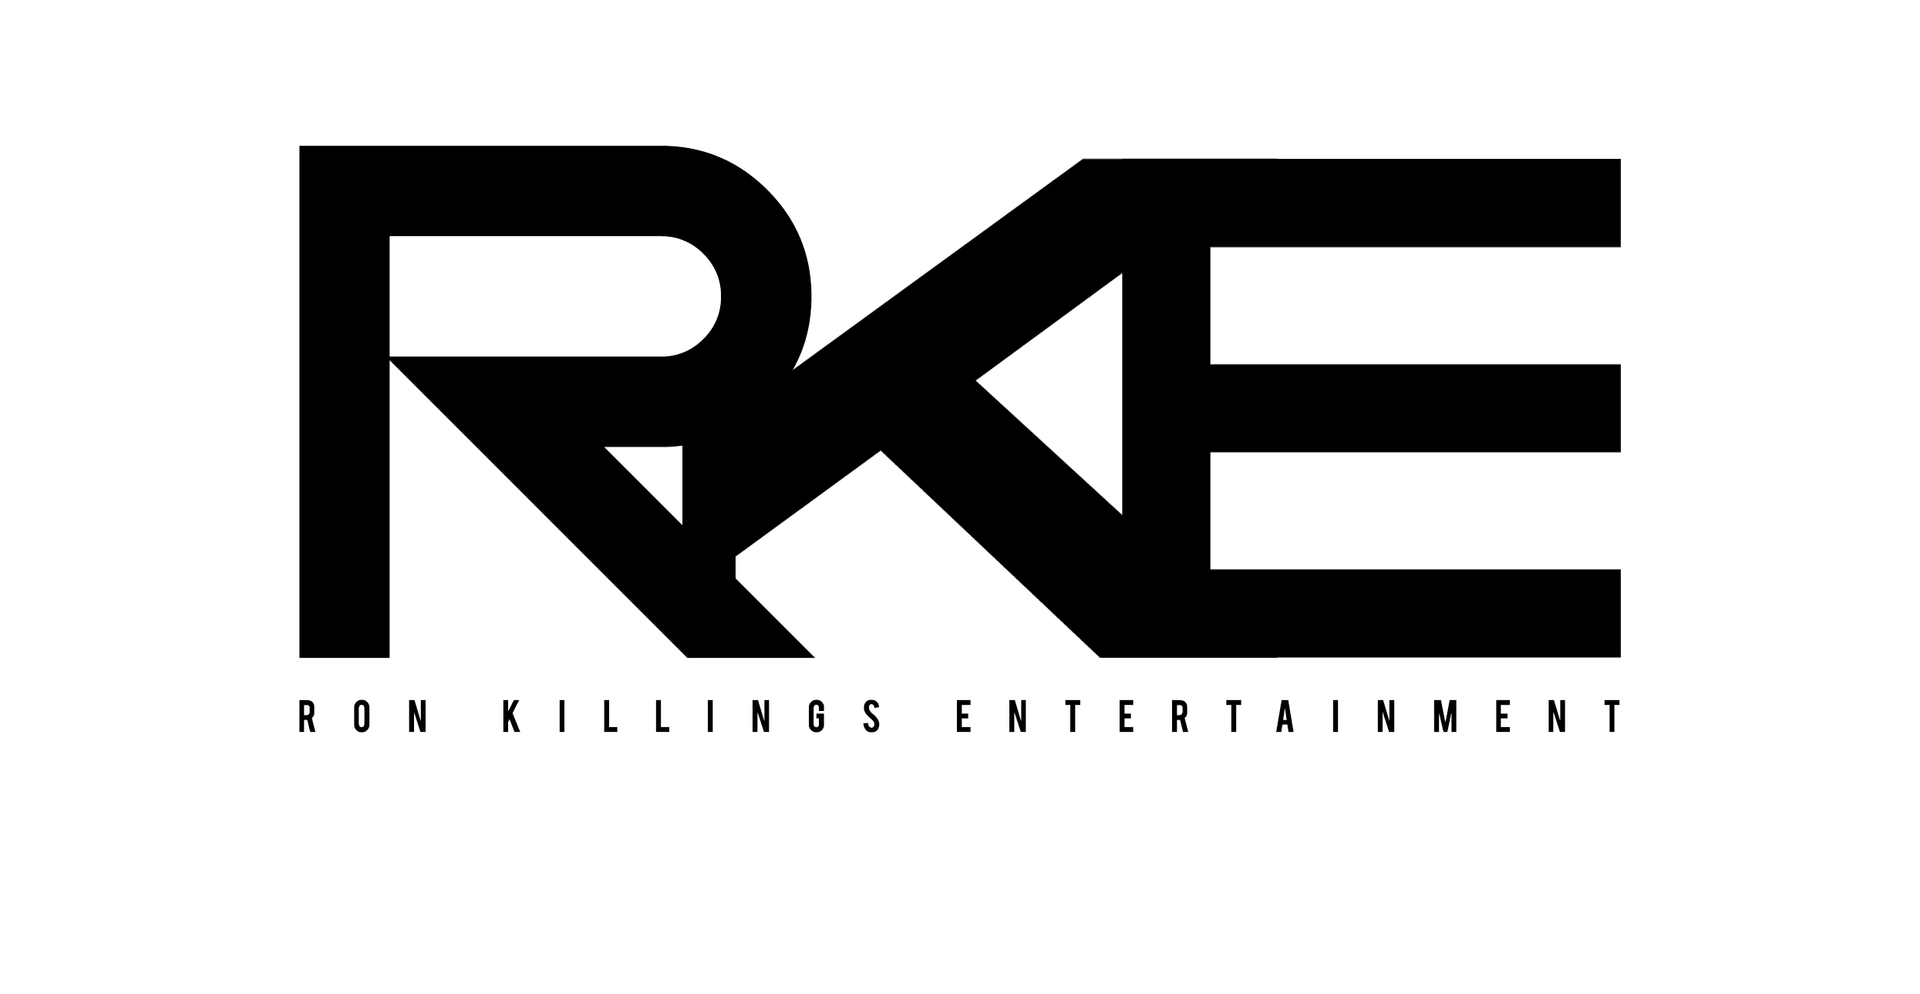 Ron Killings Entertainment Logo Design